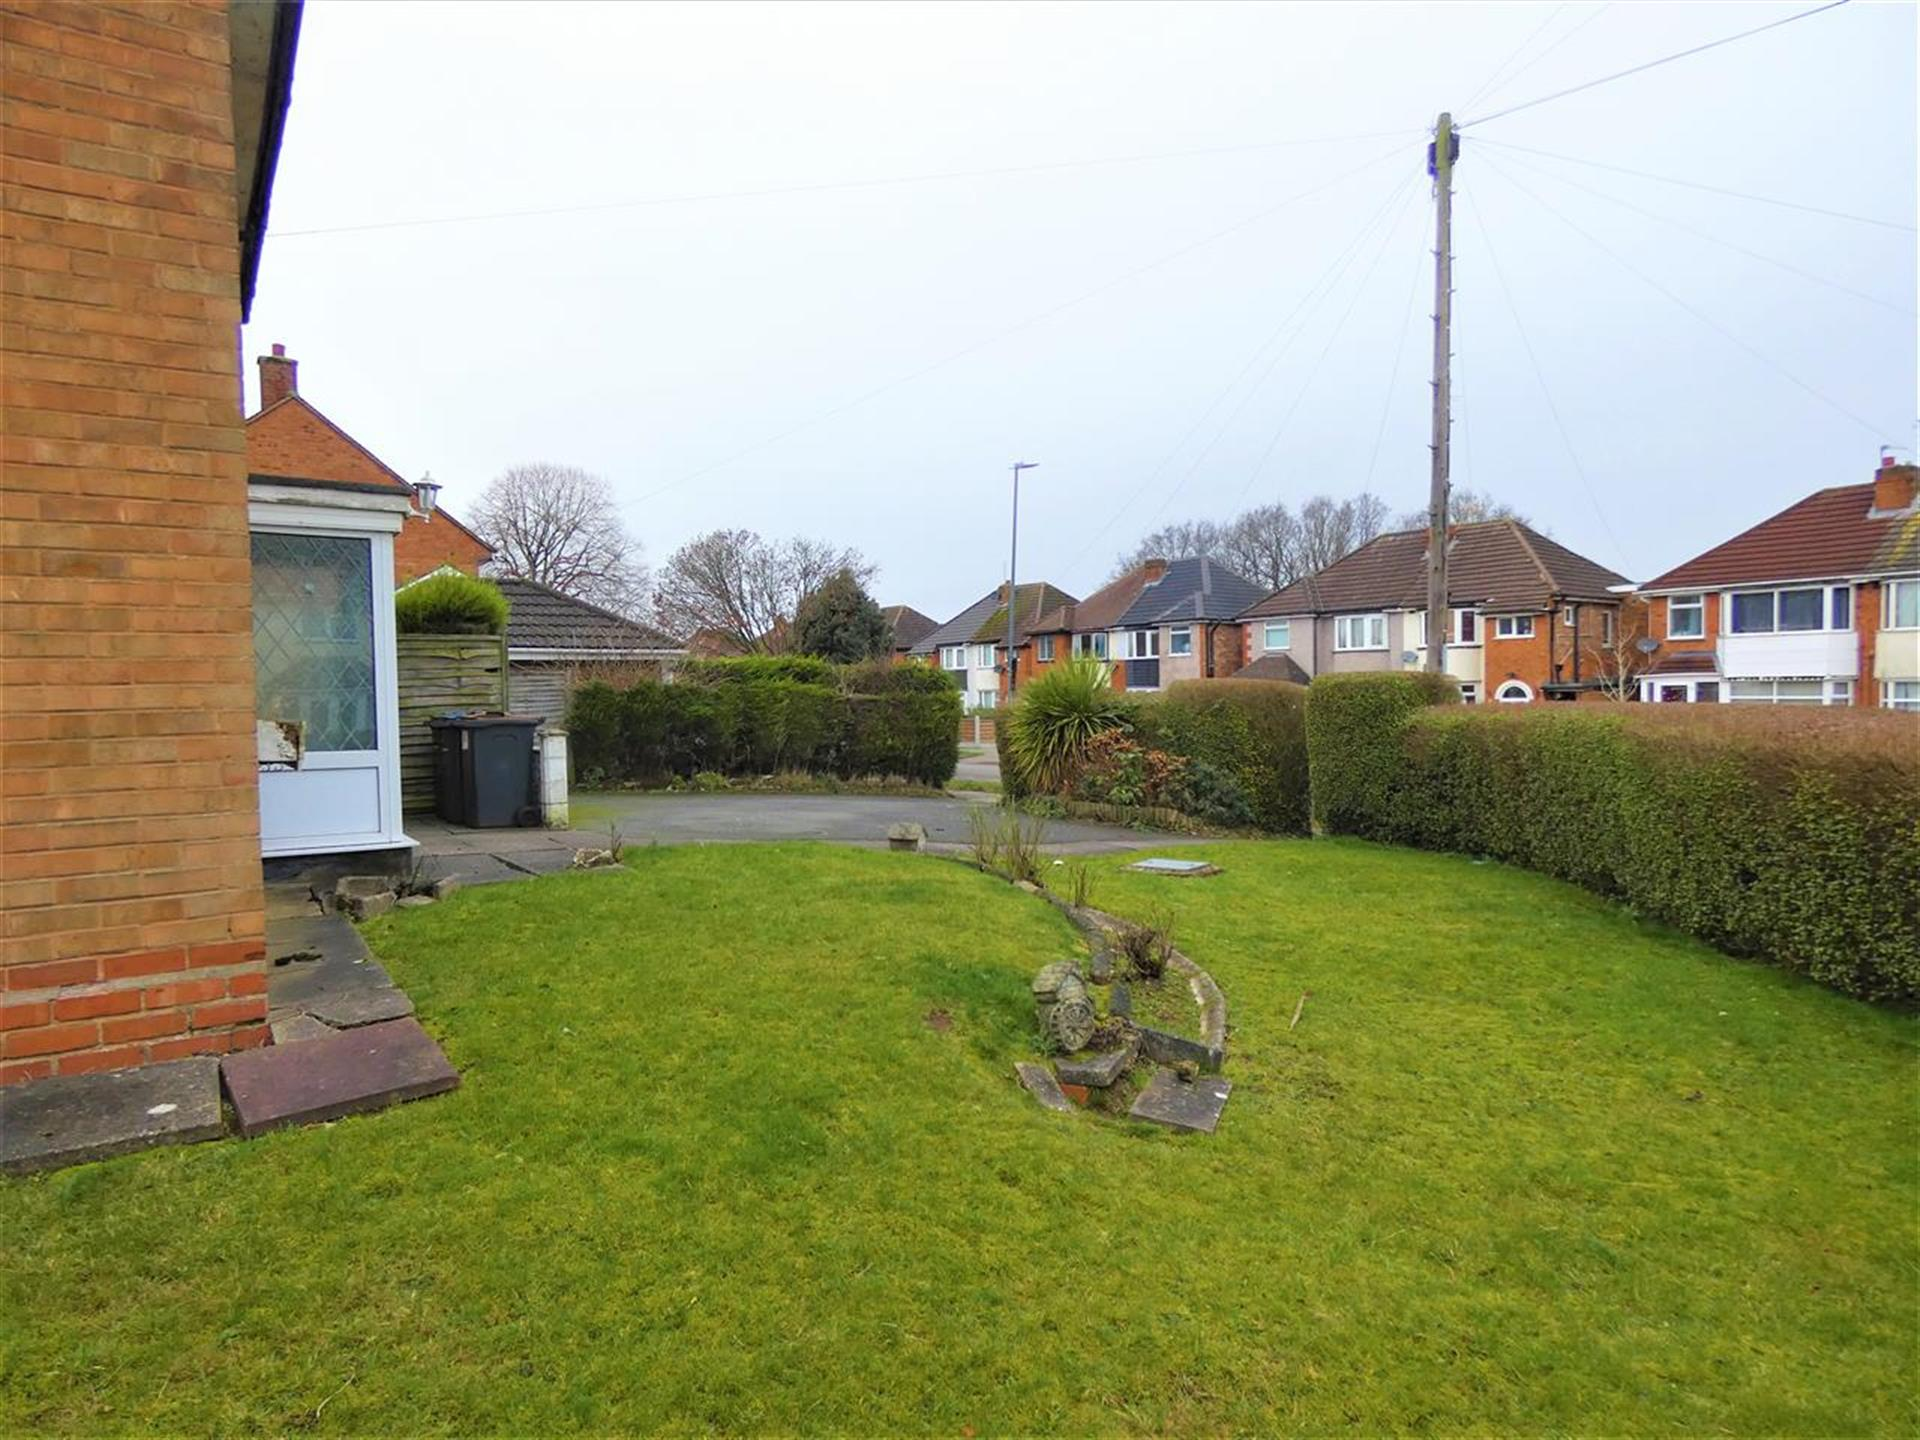 4 Bedroom End Terraced House For Sale - Image 13